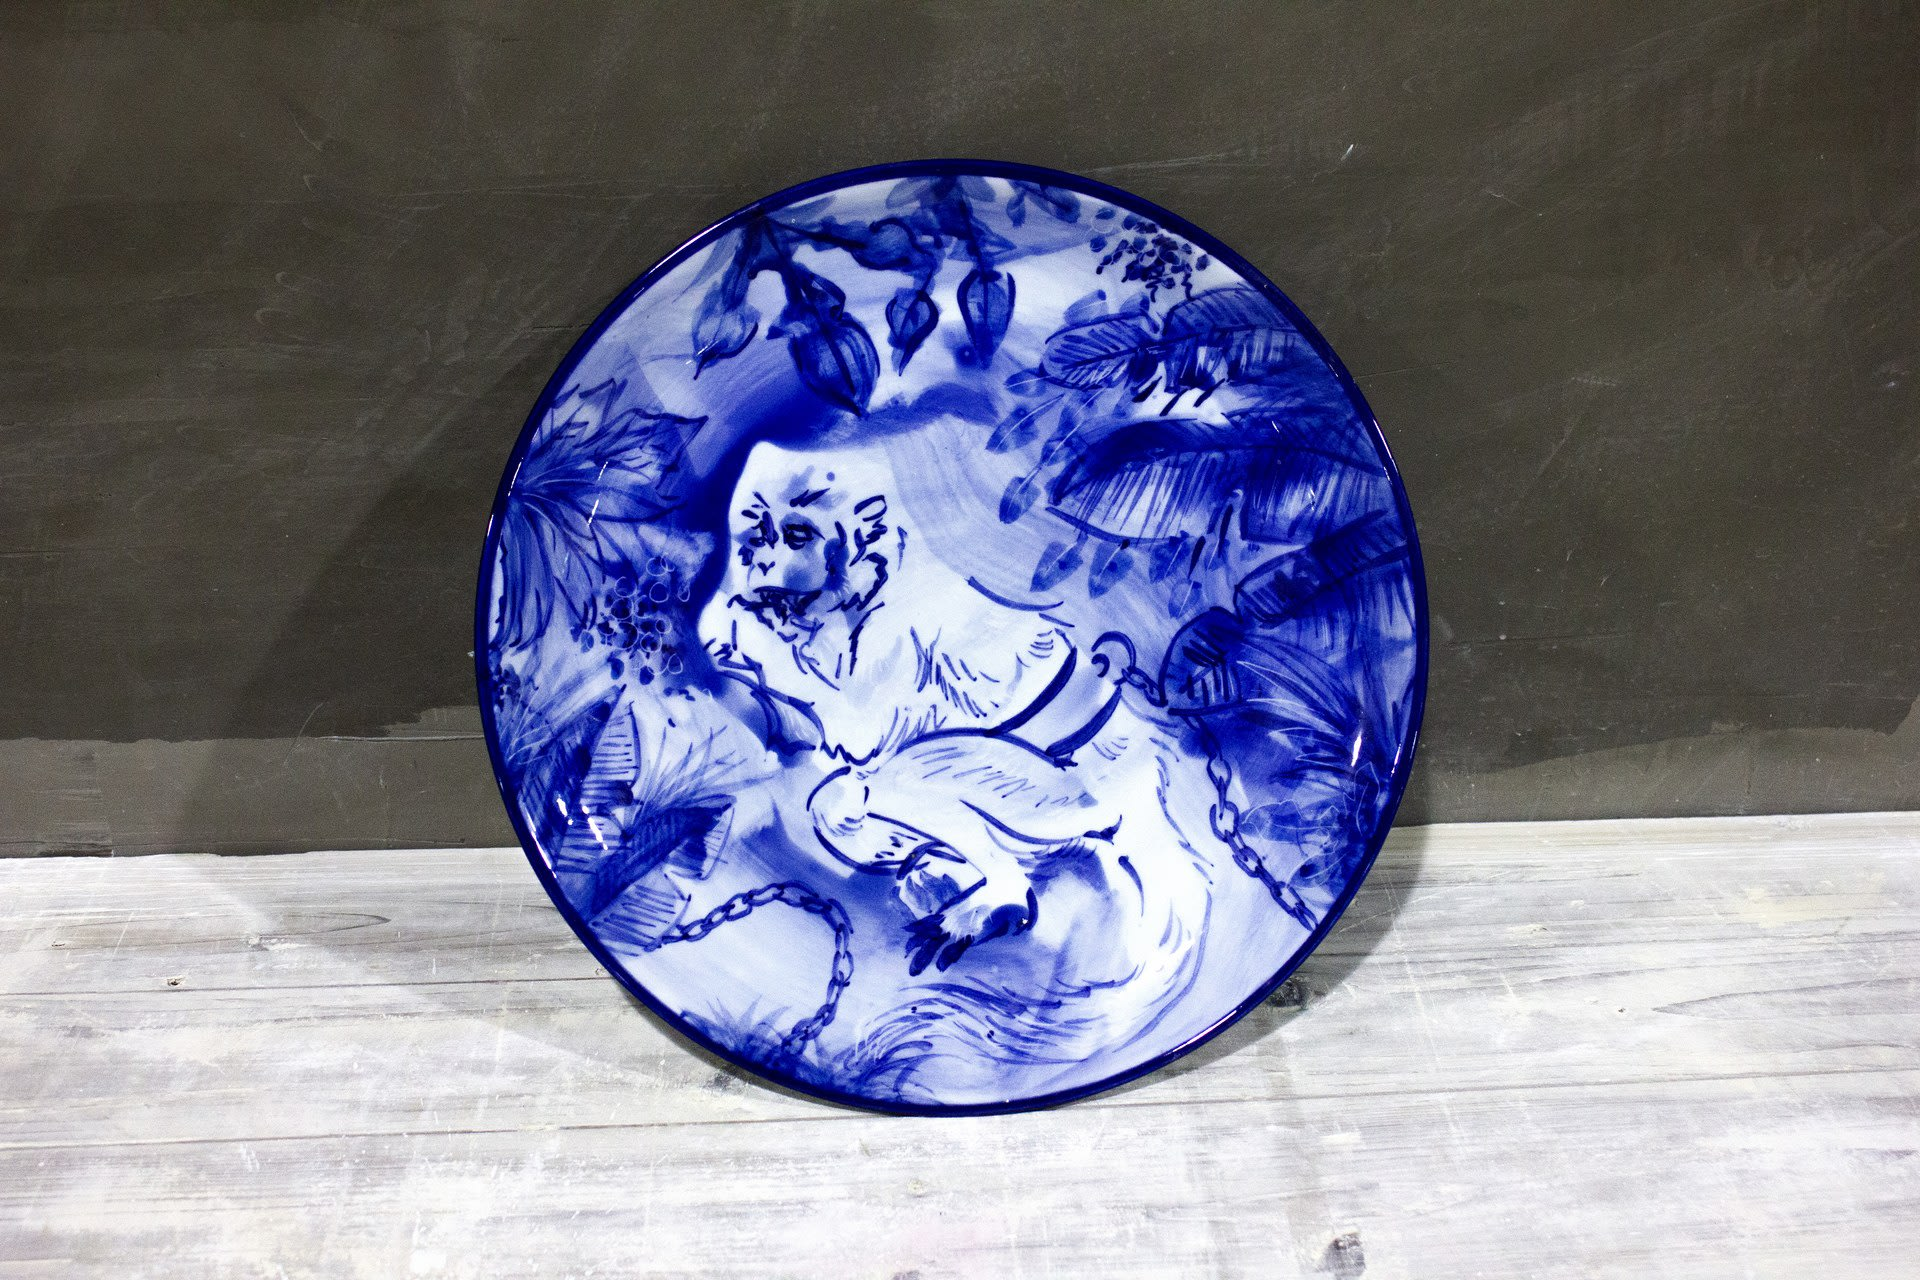 Blue Moneky Plate